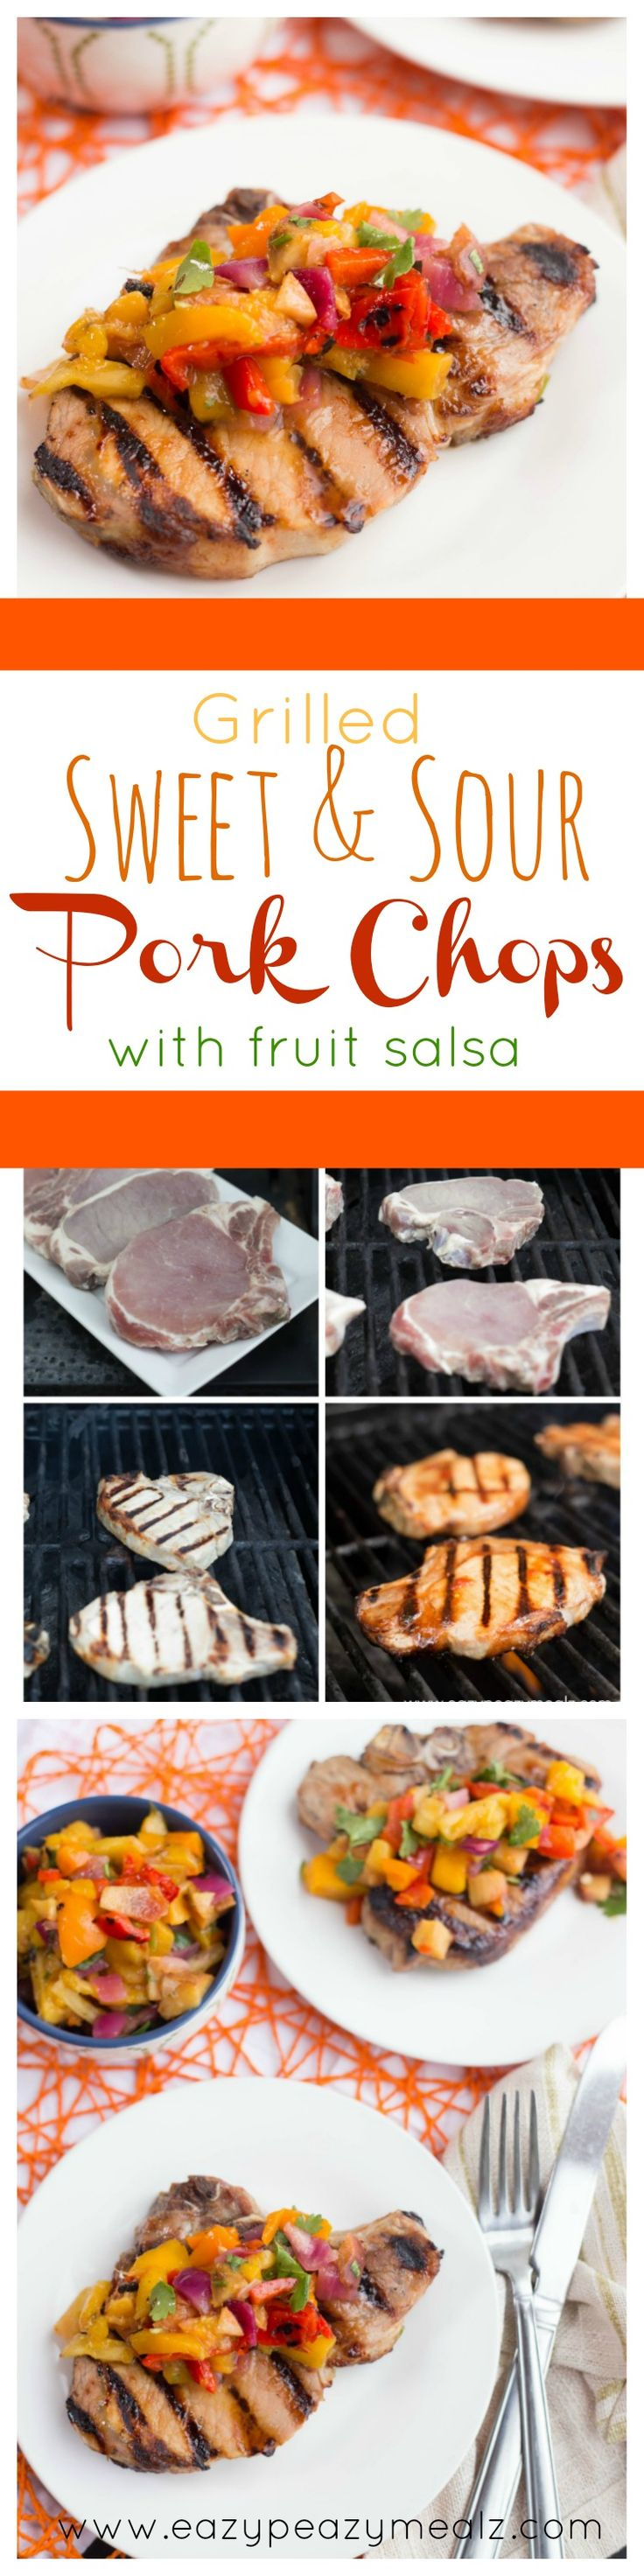 Succulent, juicy, tender pork chops grilled to perfection, slathered in sweet and sour, and topped with a grilled tropical fruit salsa. This is the perfect BBQ food! @porkbeinspired #GrillPork #ad - Eazy Peazy Mealz